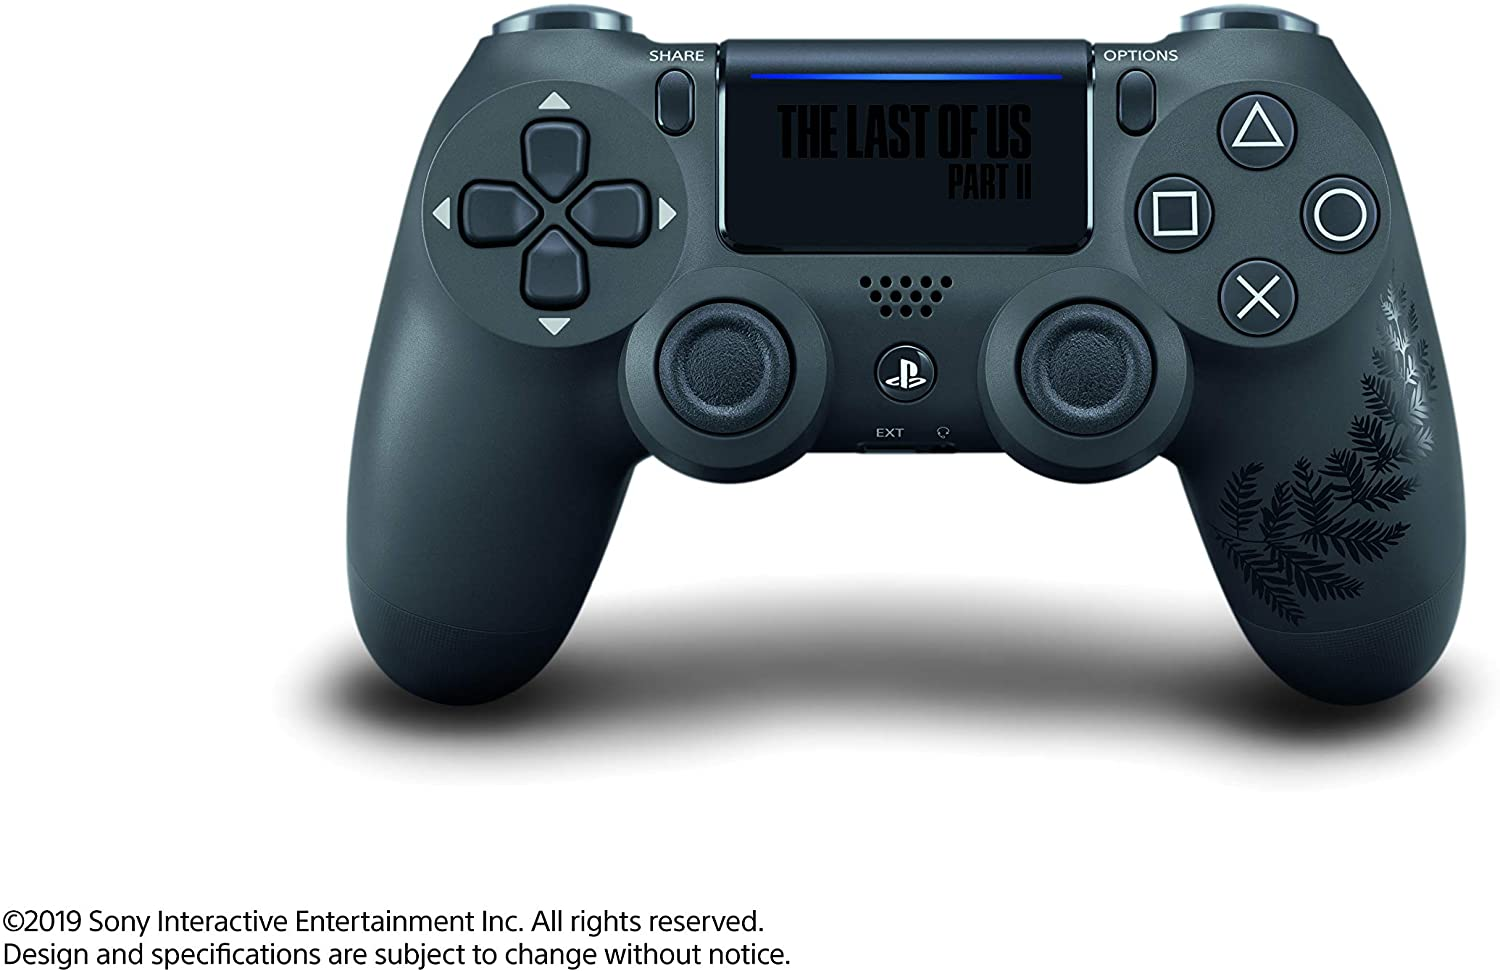 PLAYSTATION THE LAST OF US PART 2 CONTROLLER DUALSHOCK 4 LIMITED EDITION